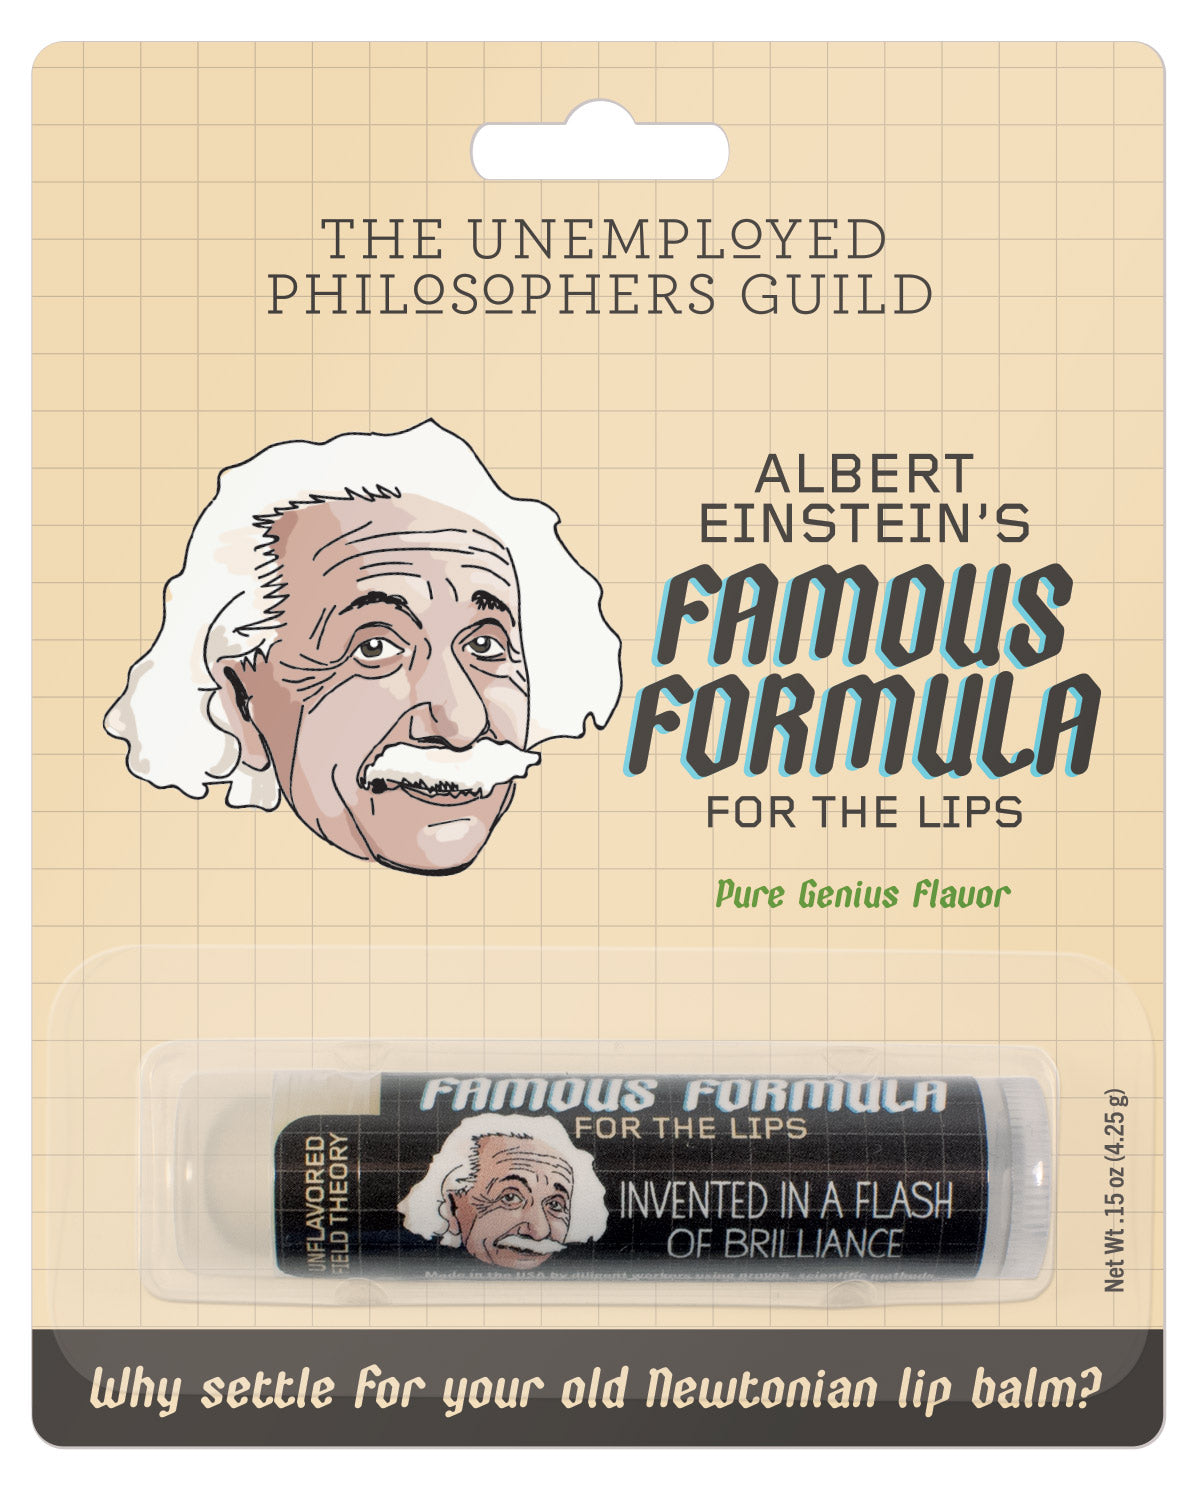 Einstein's Lip Balm - The Unemployed Philosophers Guild